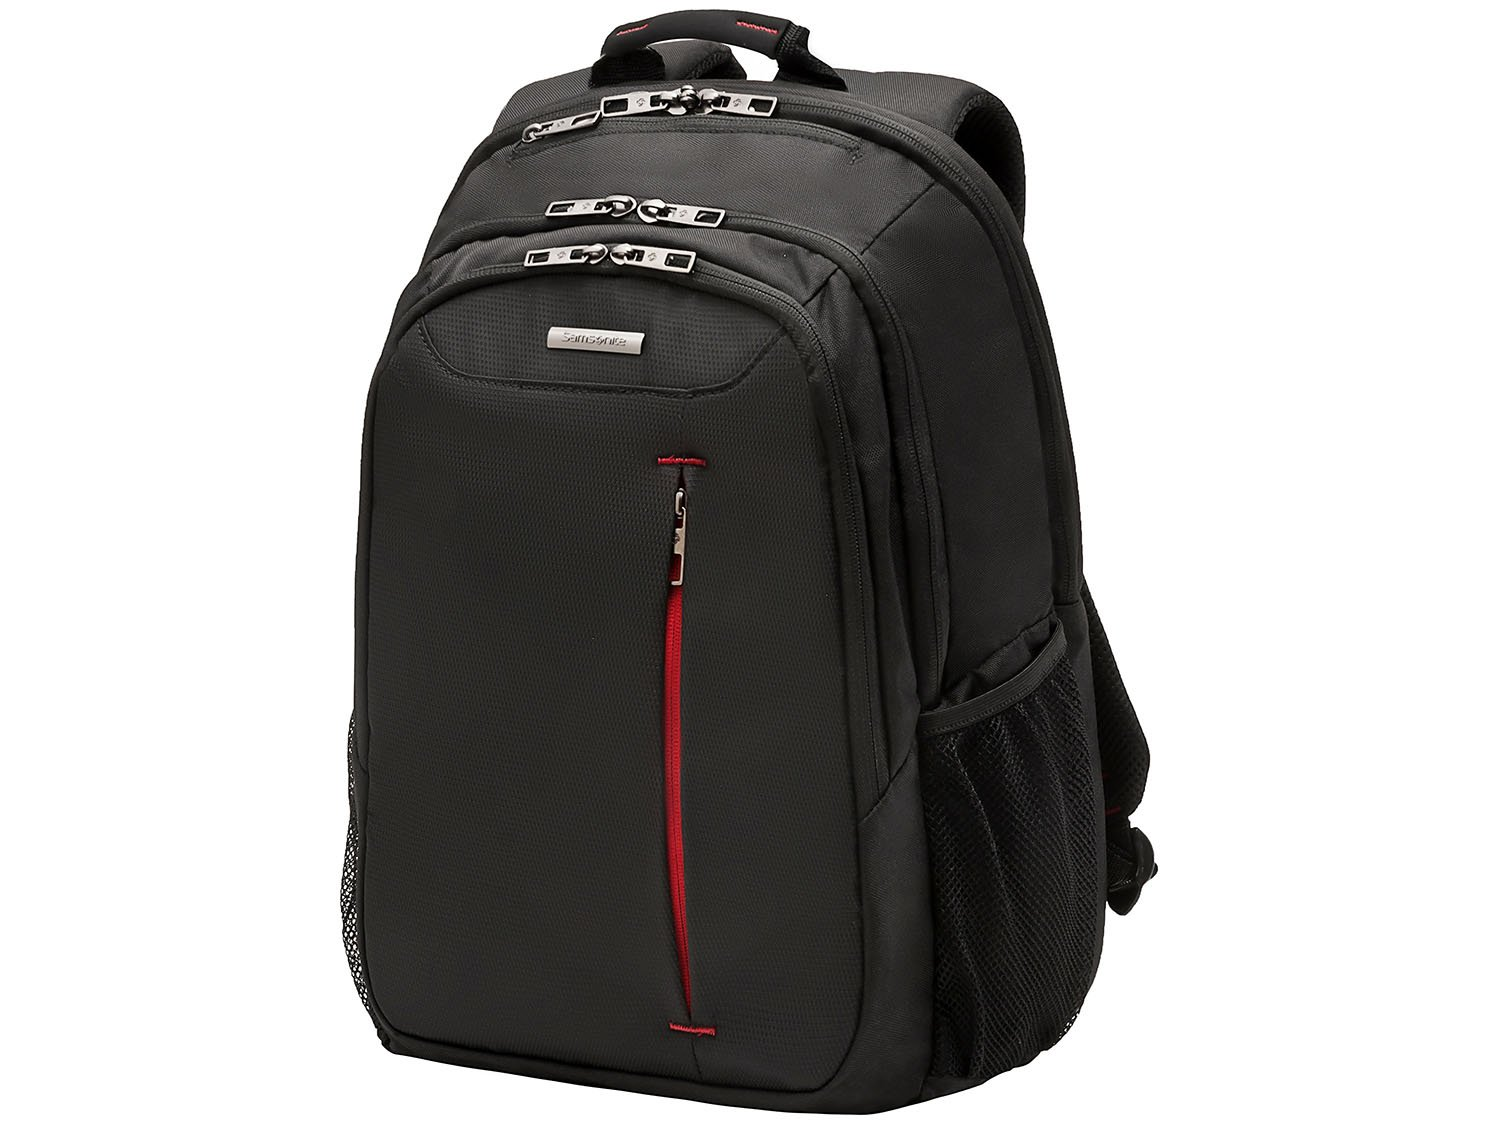 Mochila Samsonite para Notebook Guard IT Preto - 1